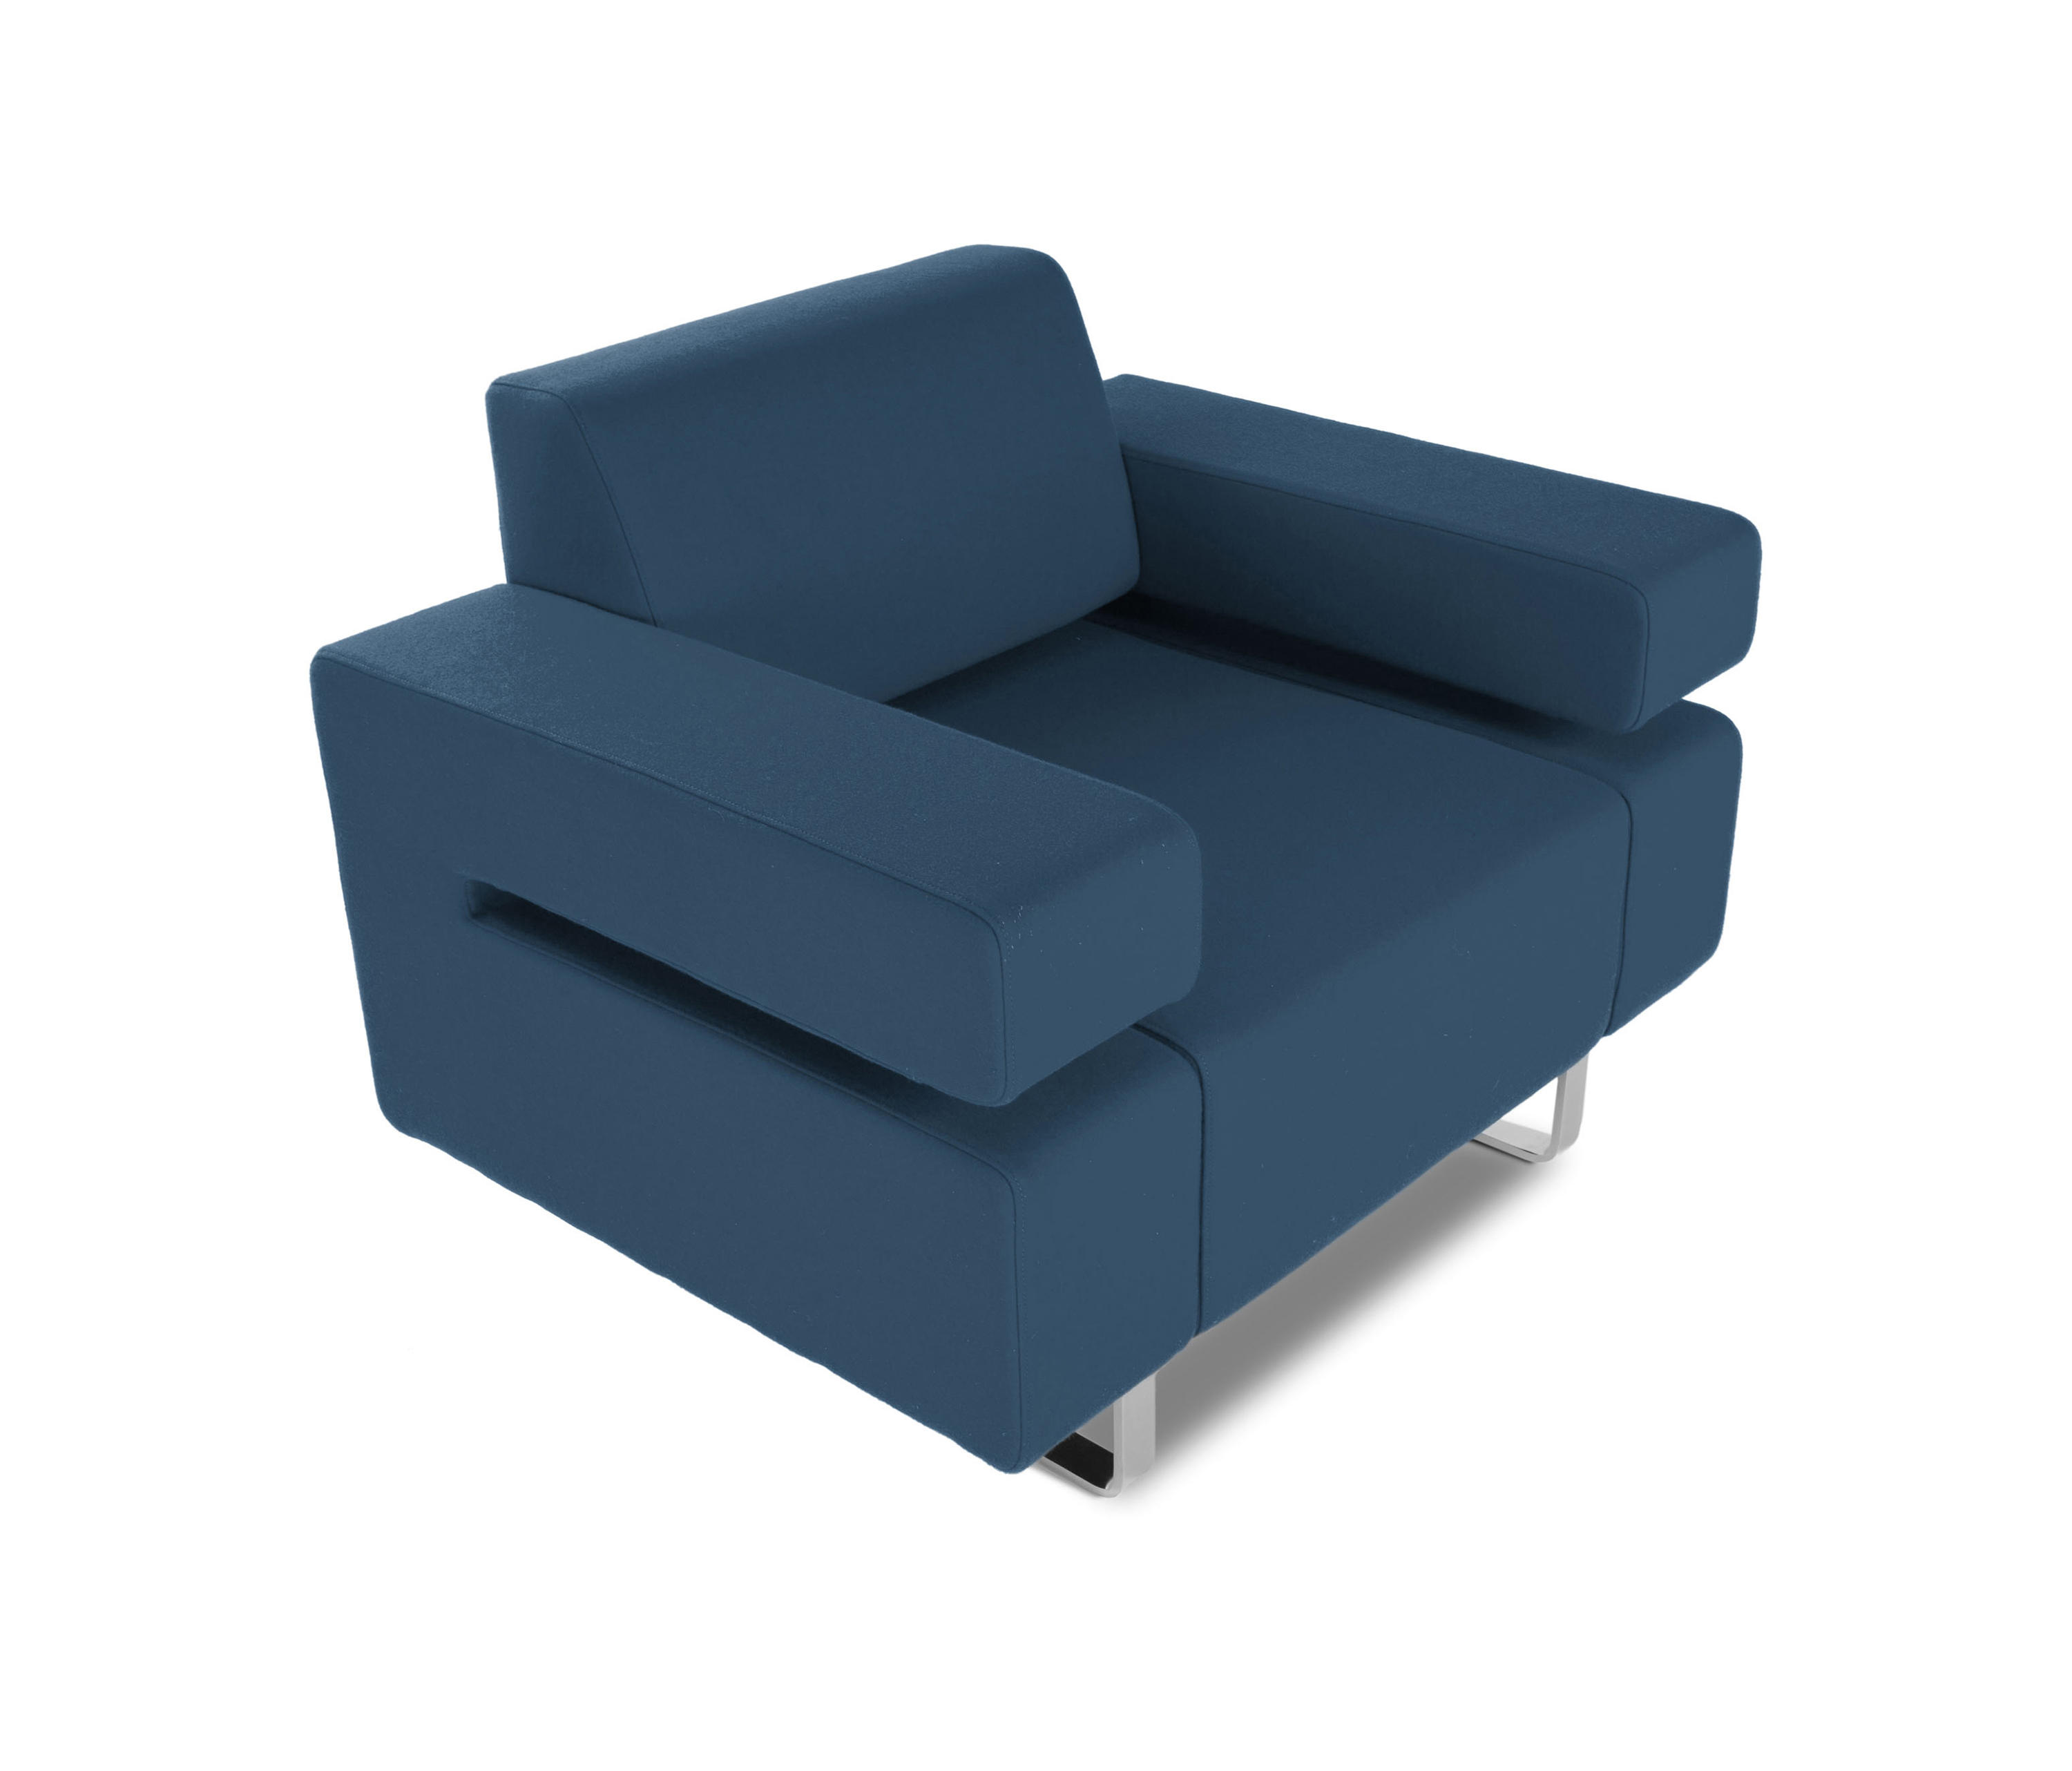 Poseidone mini lounge chairs from true design architonic for Mini designer chairs